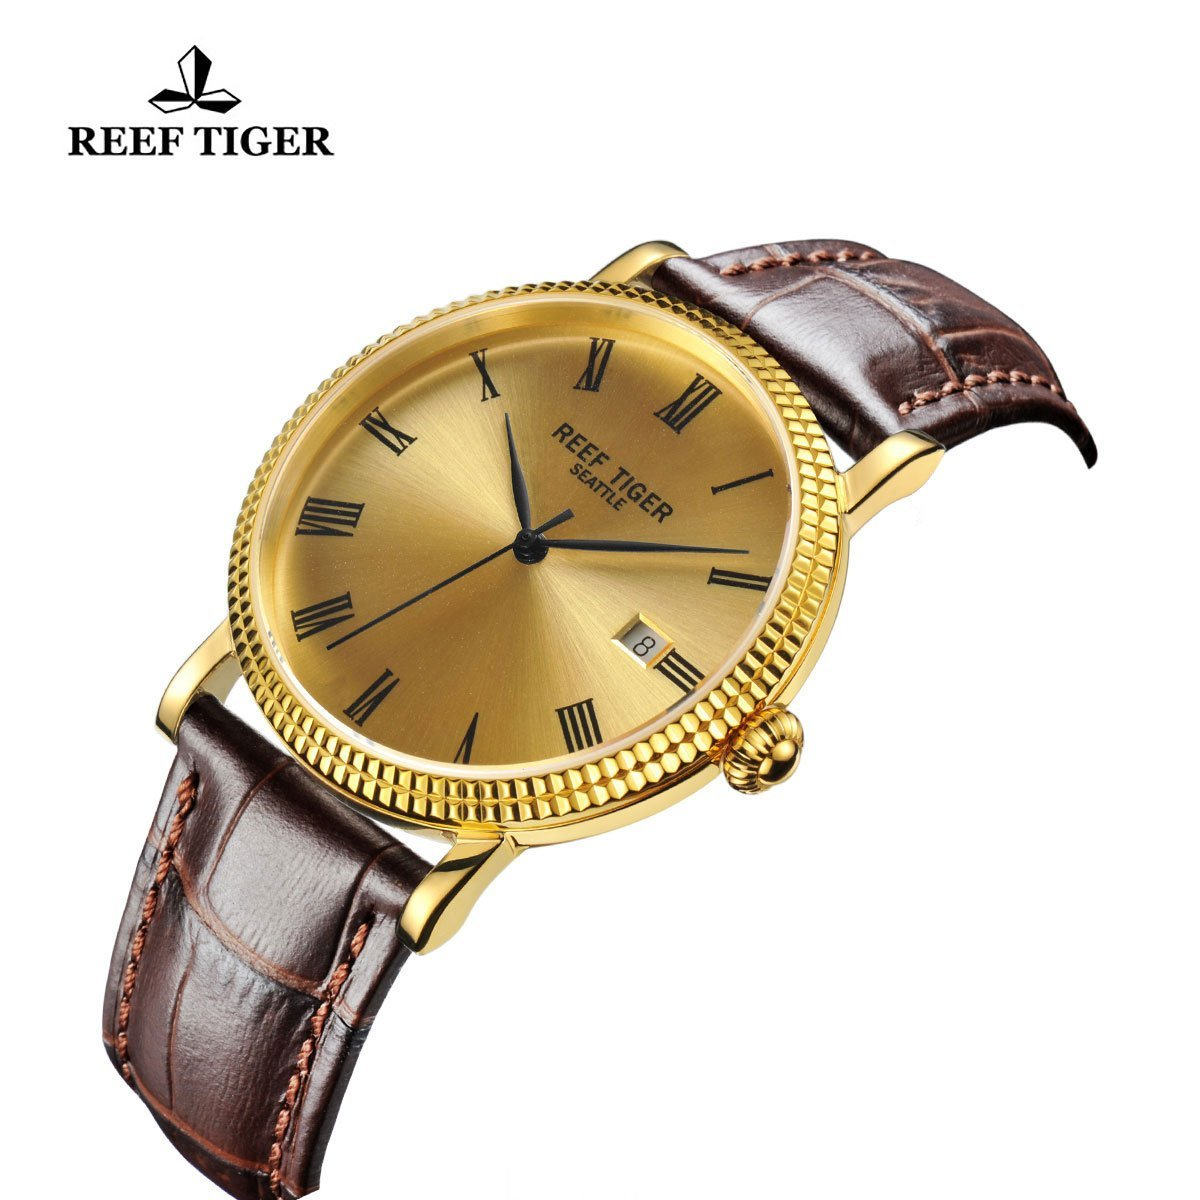 Reef Tiger Designer Dress Watches for Men Yellow Gold Case Leather Strap Date Automatic Watch RGA163 by REEF TIGER (Image #6)